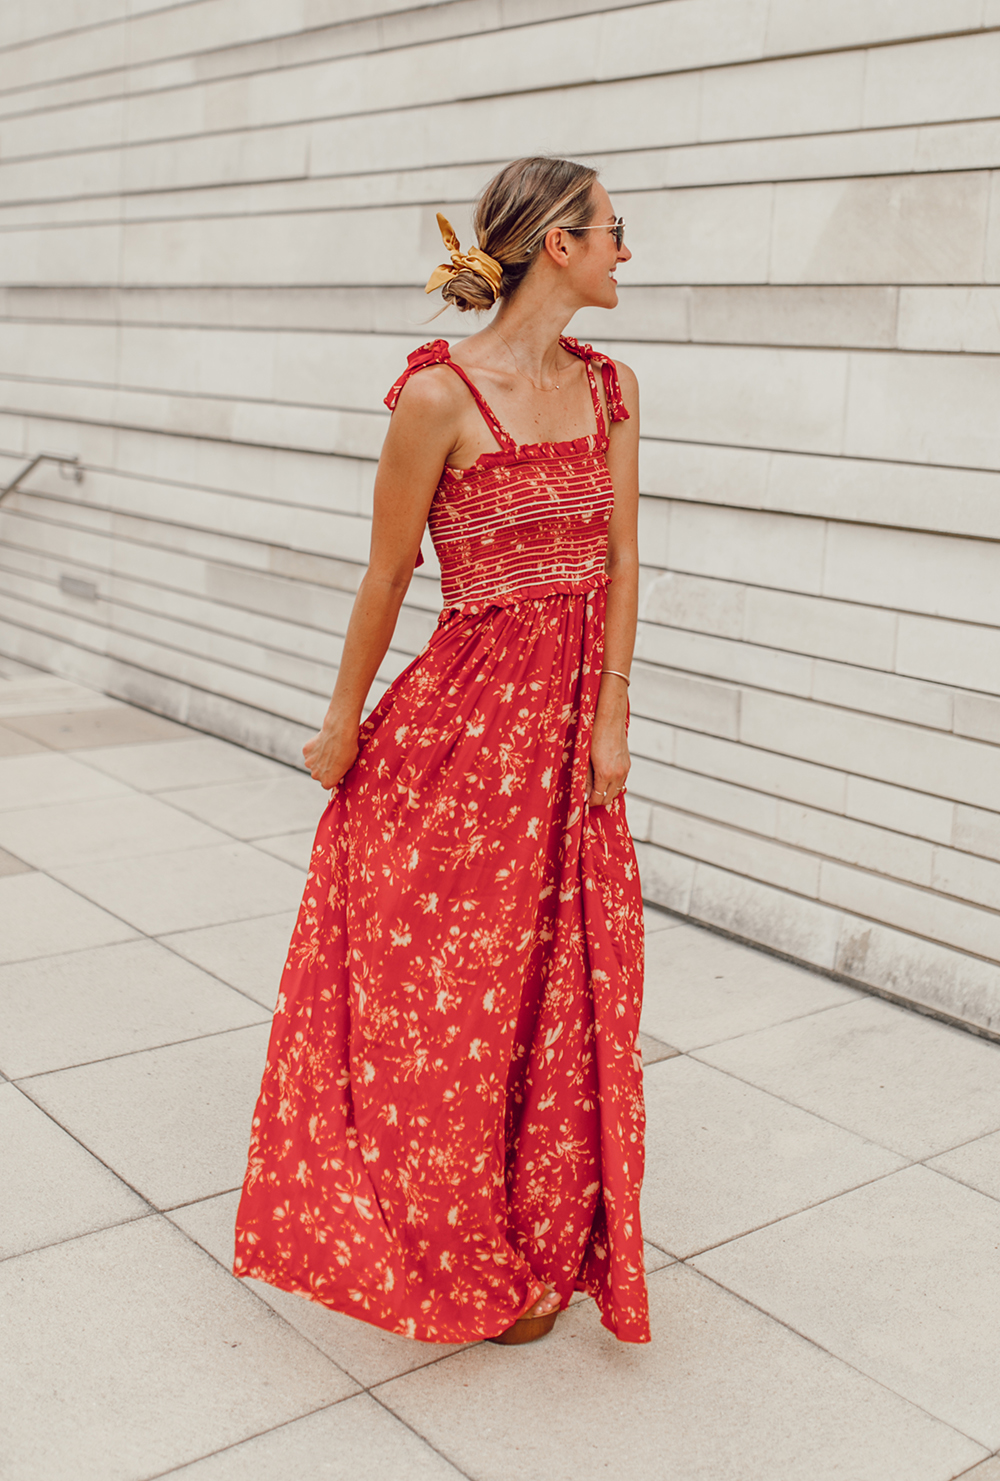 livvyland-blog-olivia-watson-austin-texas-fashion-style-blogger-free-people-red-maxi-dress-jumper-jumpsuit-summer-bbq-outfit-idea-5